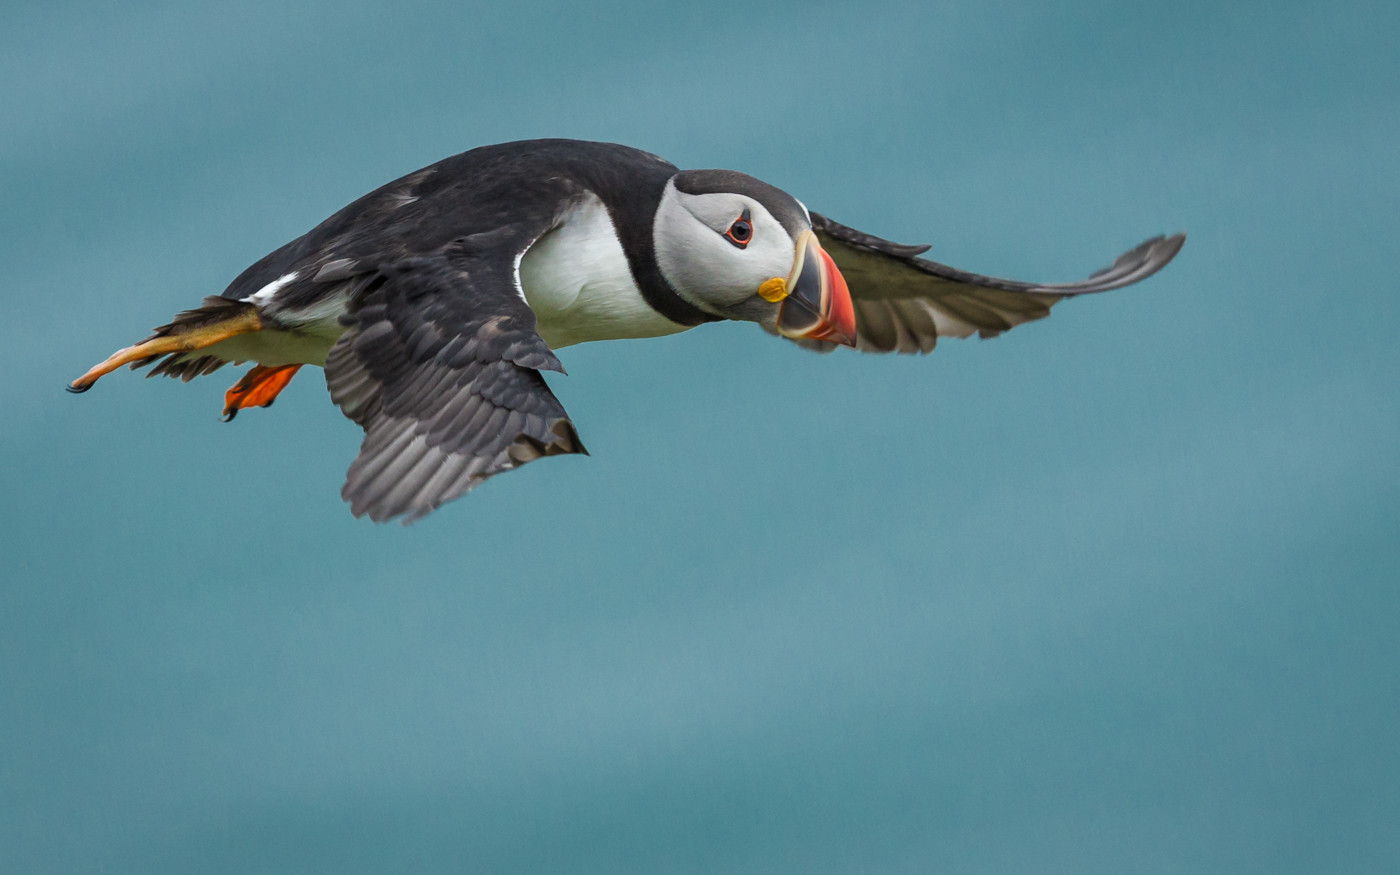 20 A PUFFIN PREPARES FOR LANDING by David Godfrey